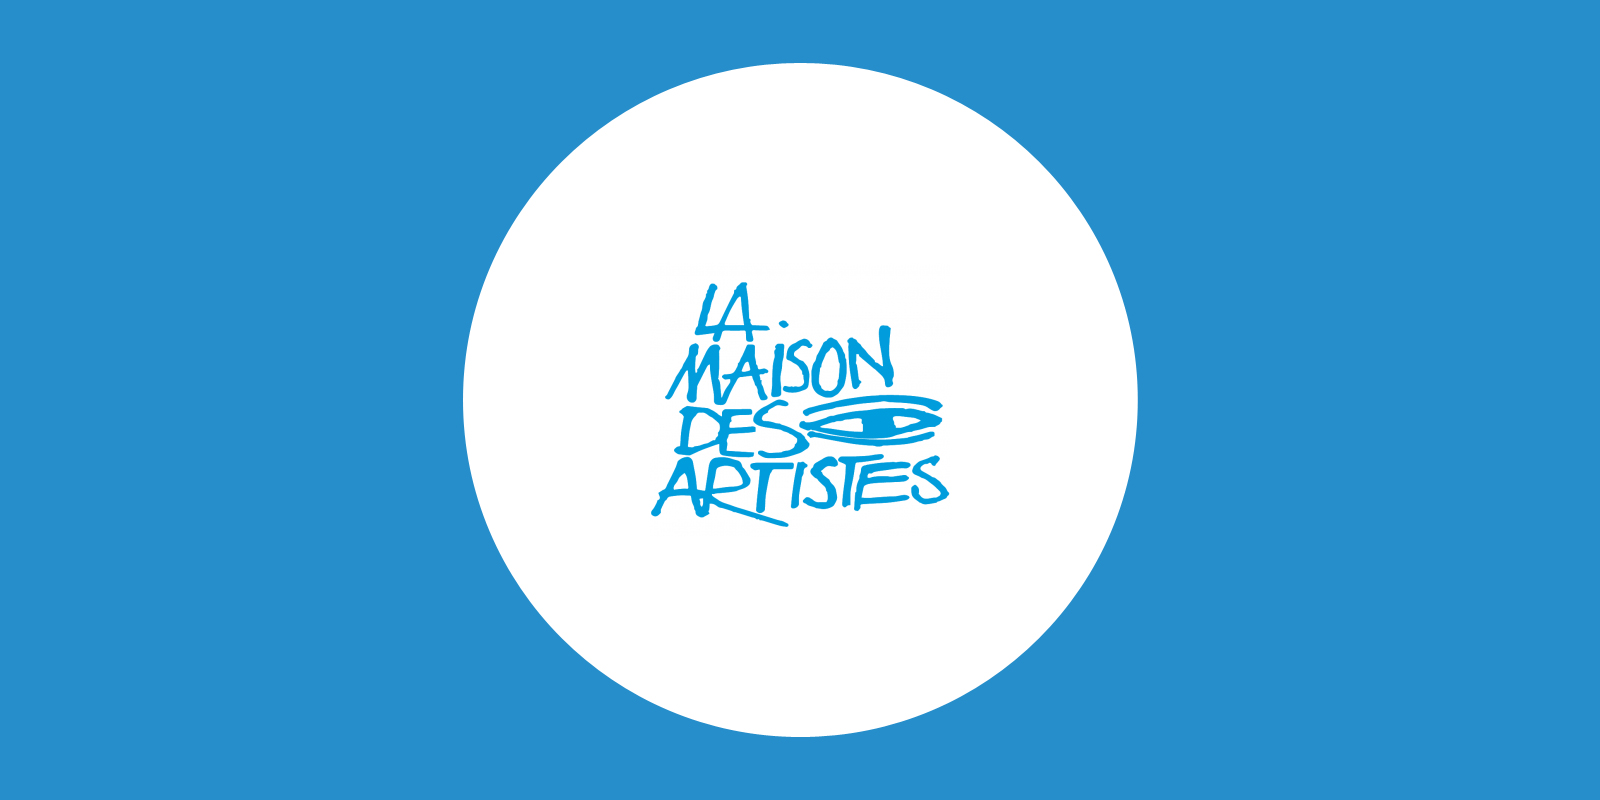 Affiliation maison des artistes ventana blog for Affiliation maison des artistes